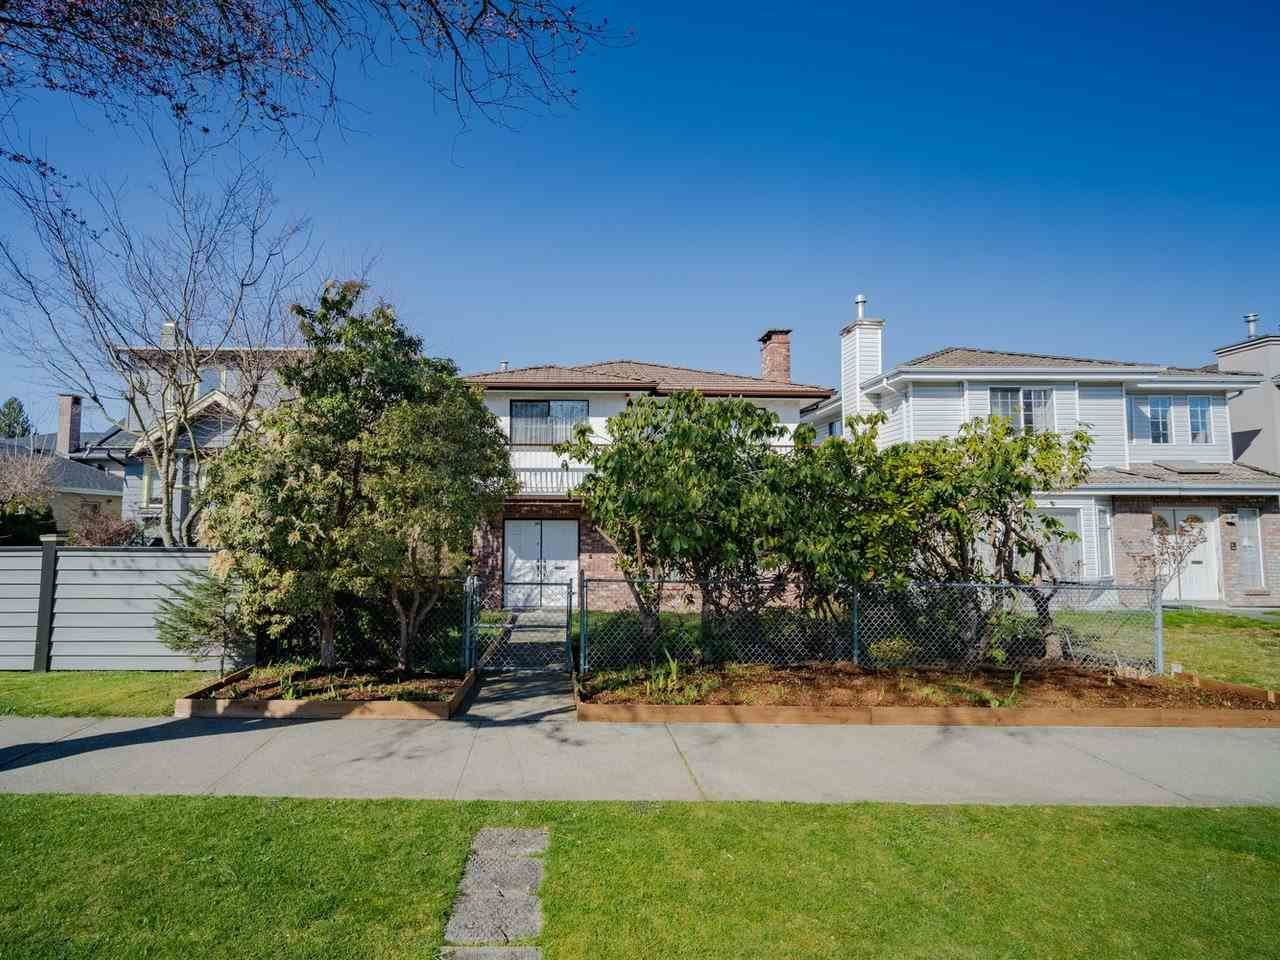 Main Photo: 2817 E 21ST AVENUE in Vancouver: Renfrew Heights House for sale (Vancouver East)  : MLS®# R2558732